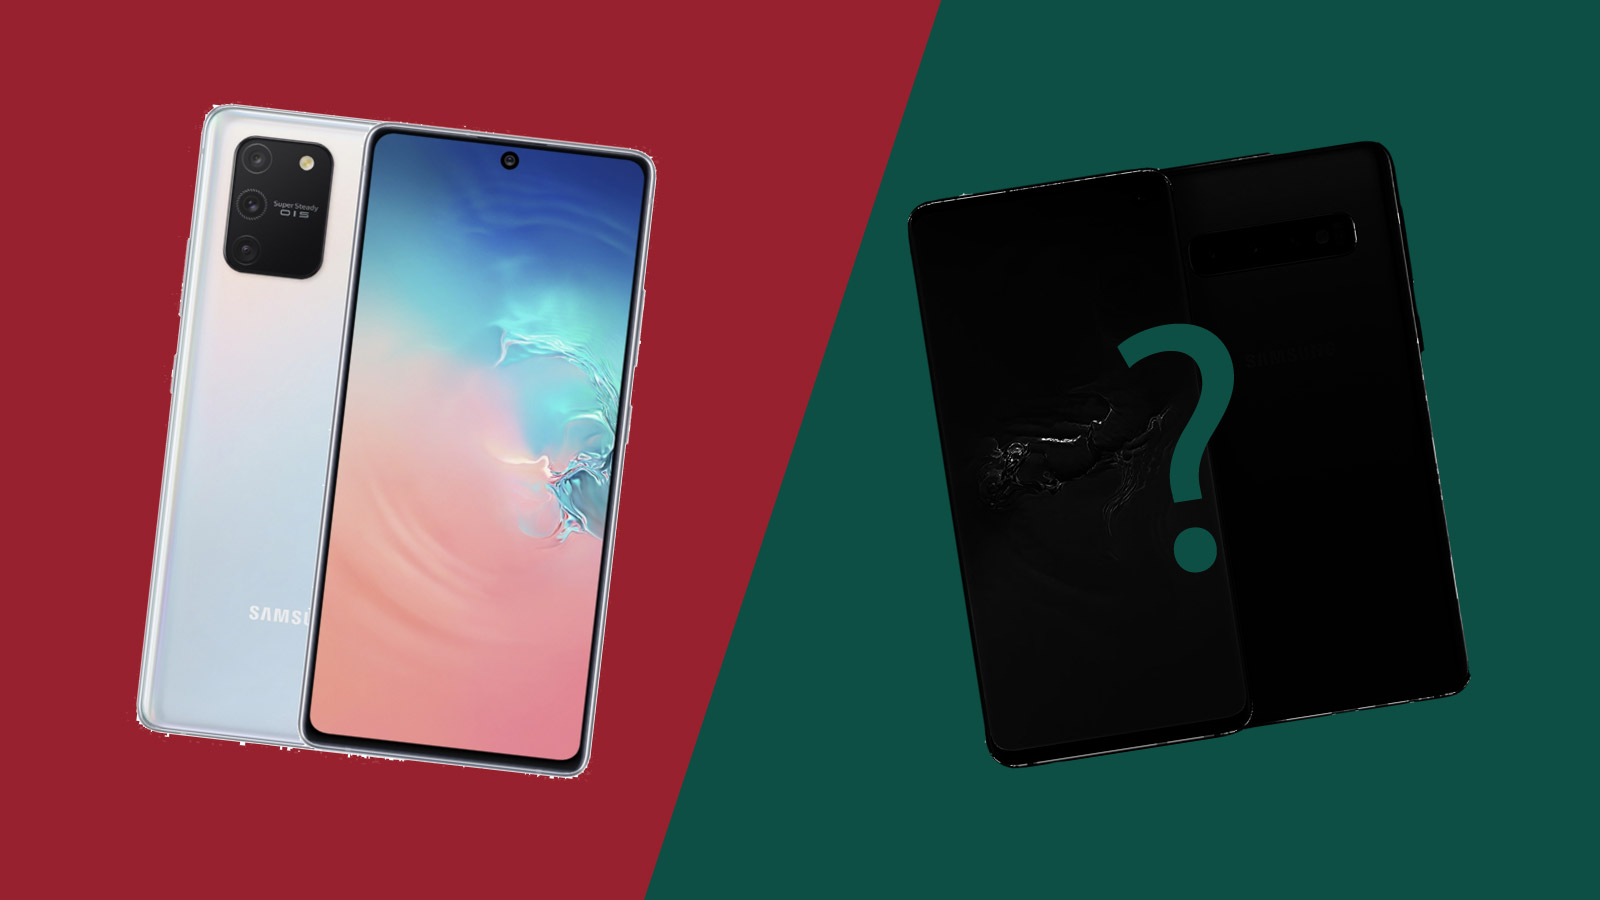 What can the new Samsung Galaxy S10 Lite tell us about the upcoming Galaxy S11?